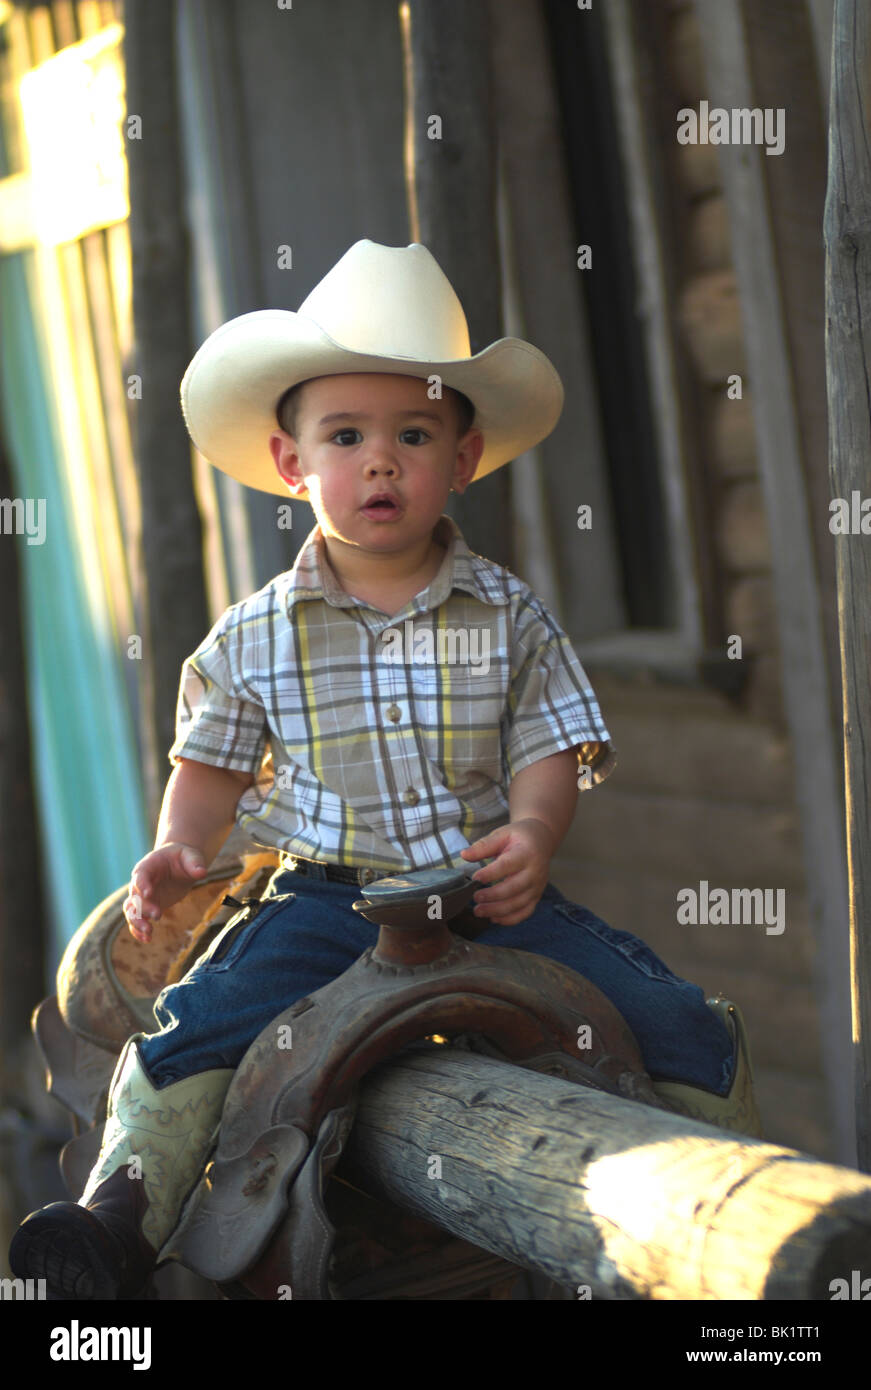 Wearing Cowboy Boots And Hat Stock Photos   Wearing Cowboy Boots And ... 7e3f691a4ac